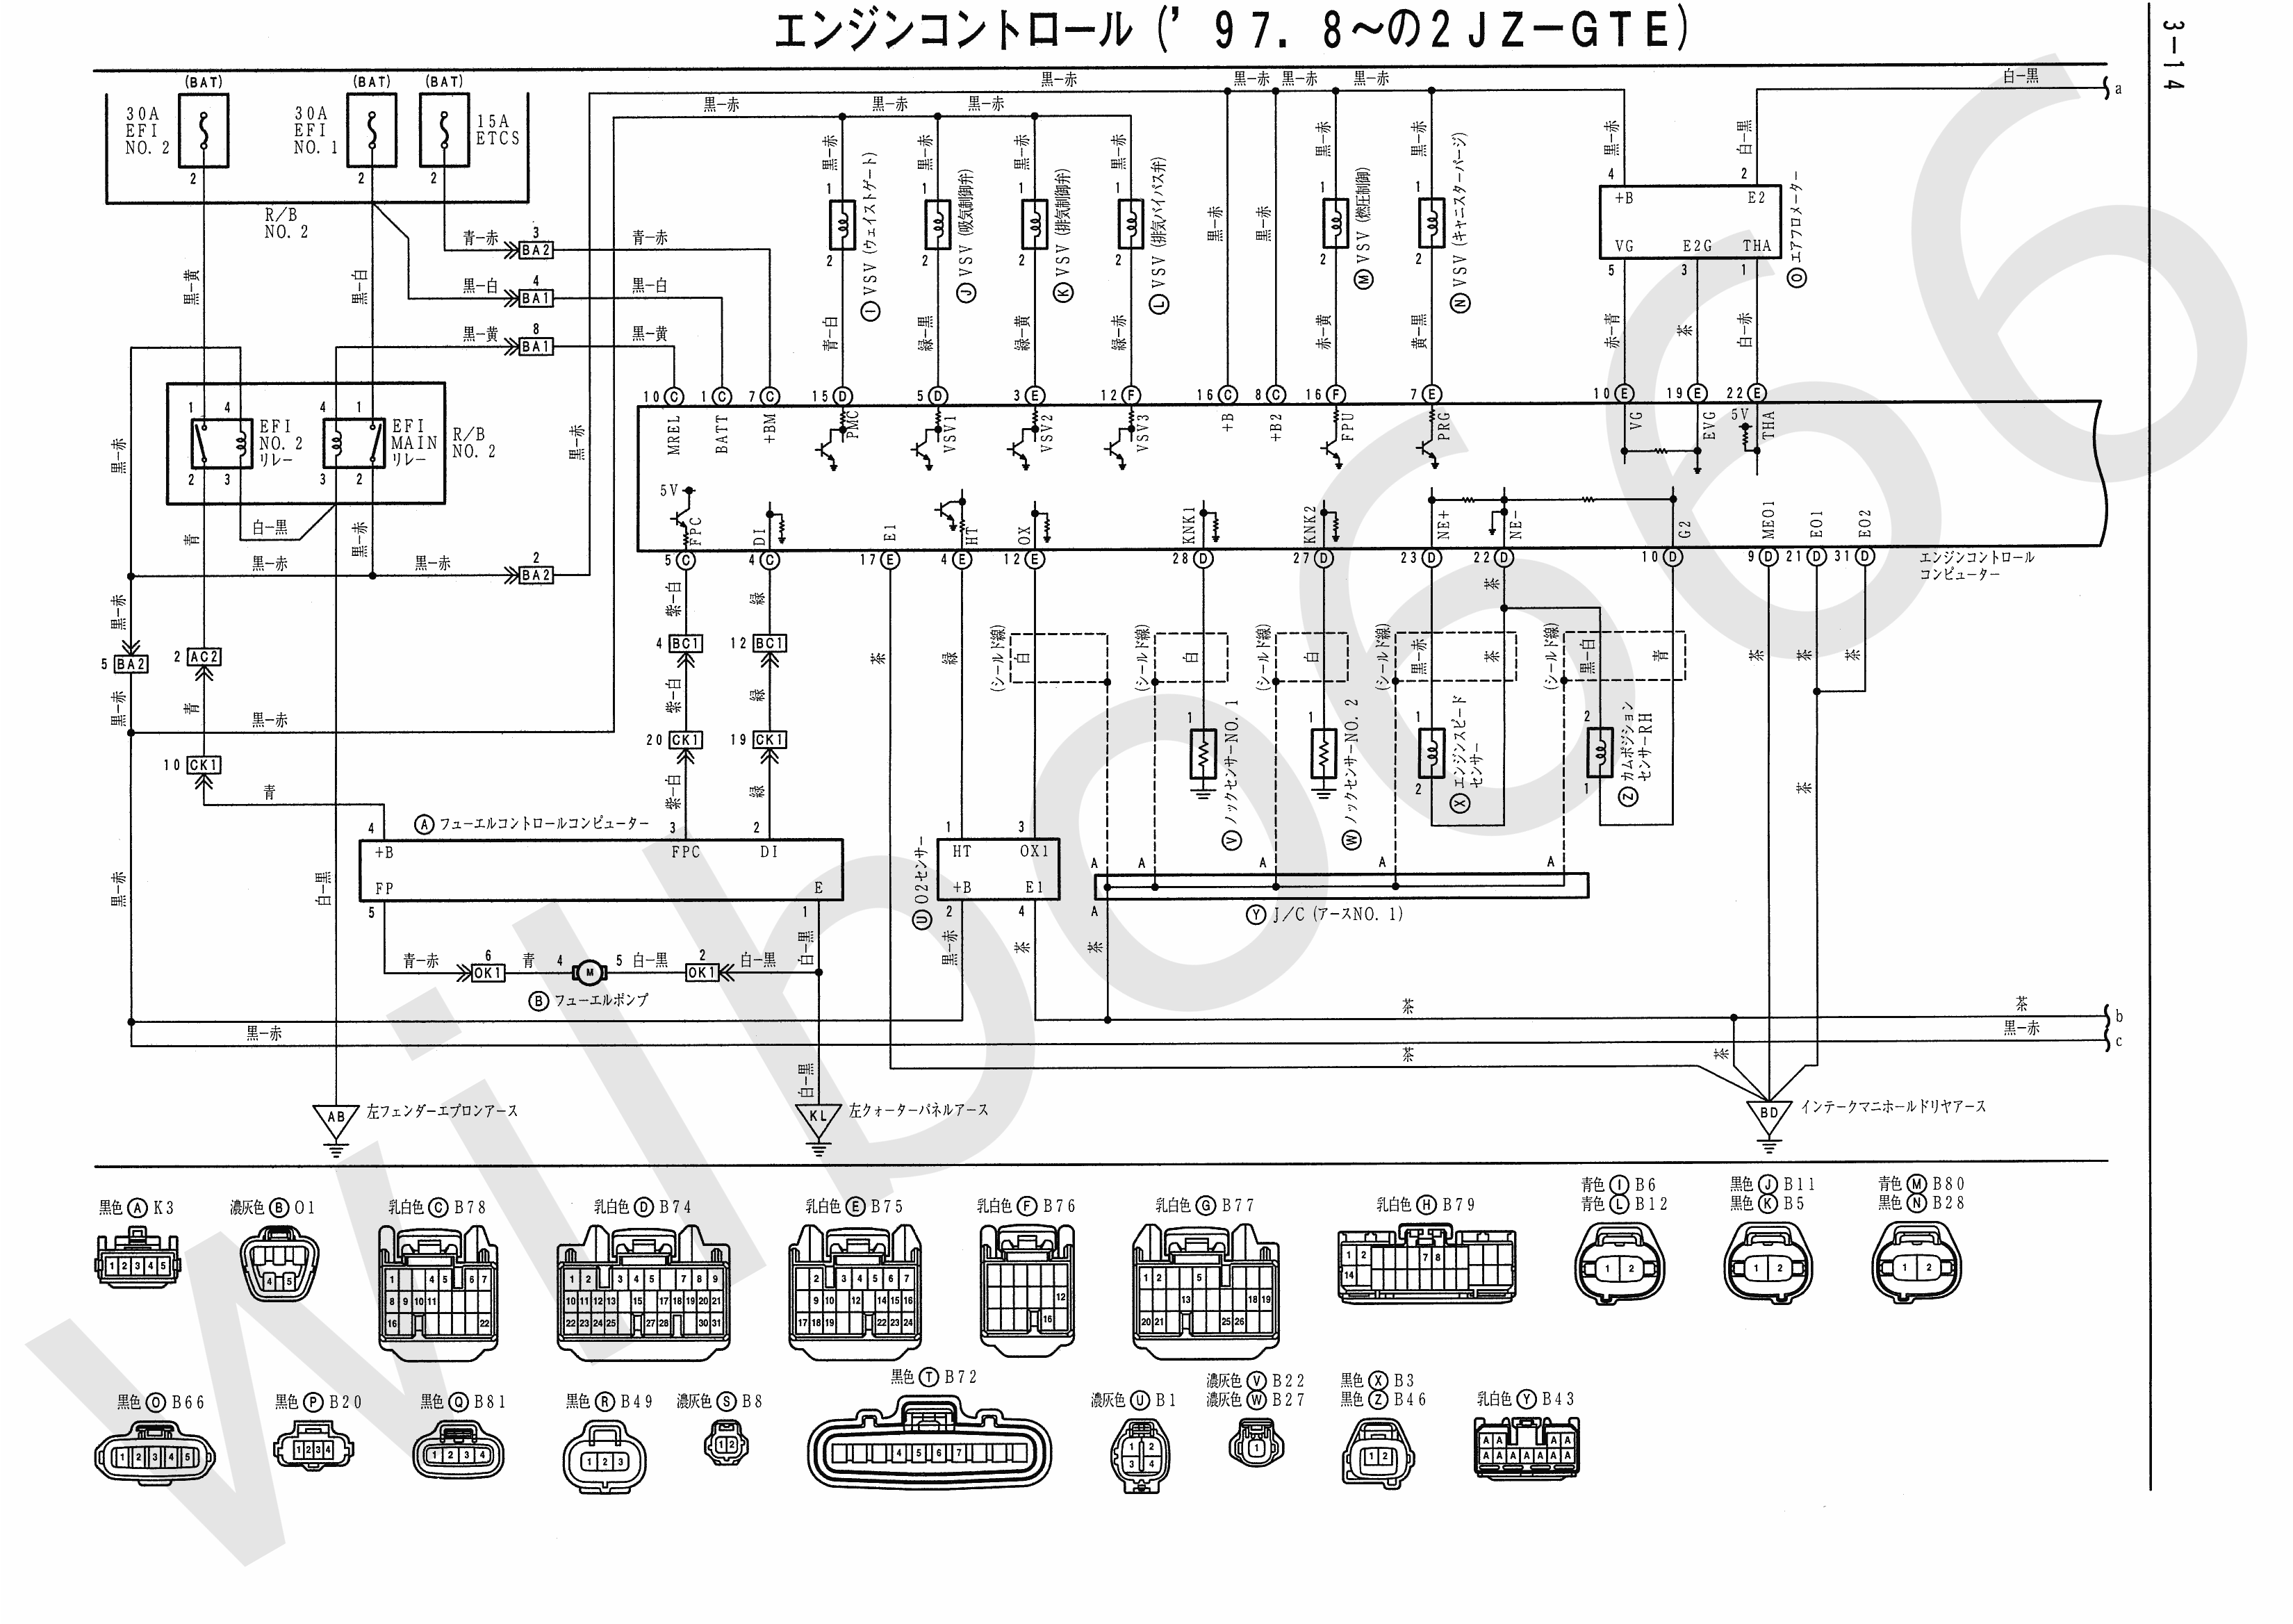 JZA80 Electrical Wiring Diagram 6742505 3 14 wilbo666 2jz gte vvti jza80 supra engine wiring 2jzgte wiring diagram at mifinder.co